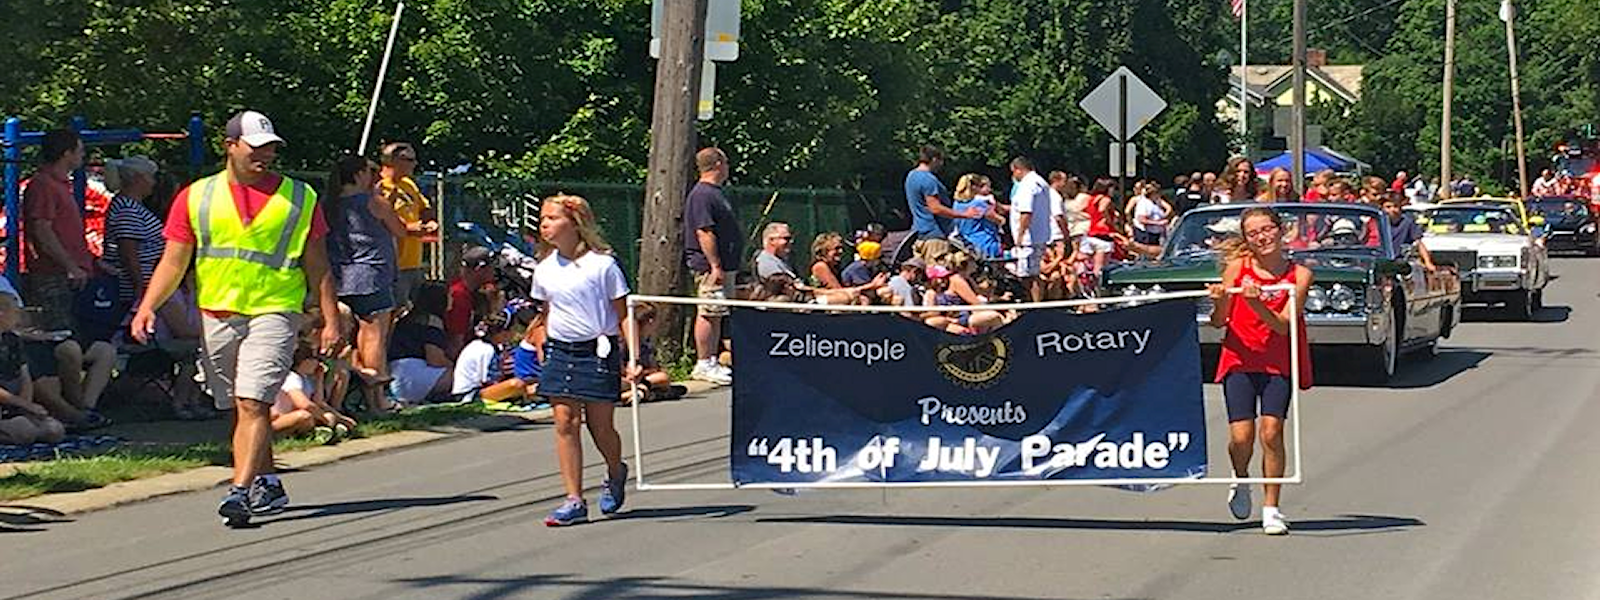 Zelienople 4th of July Parade